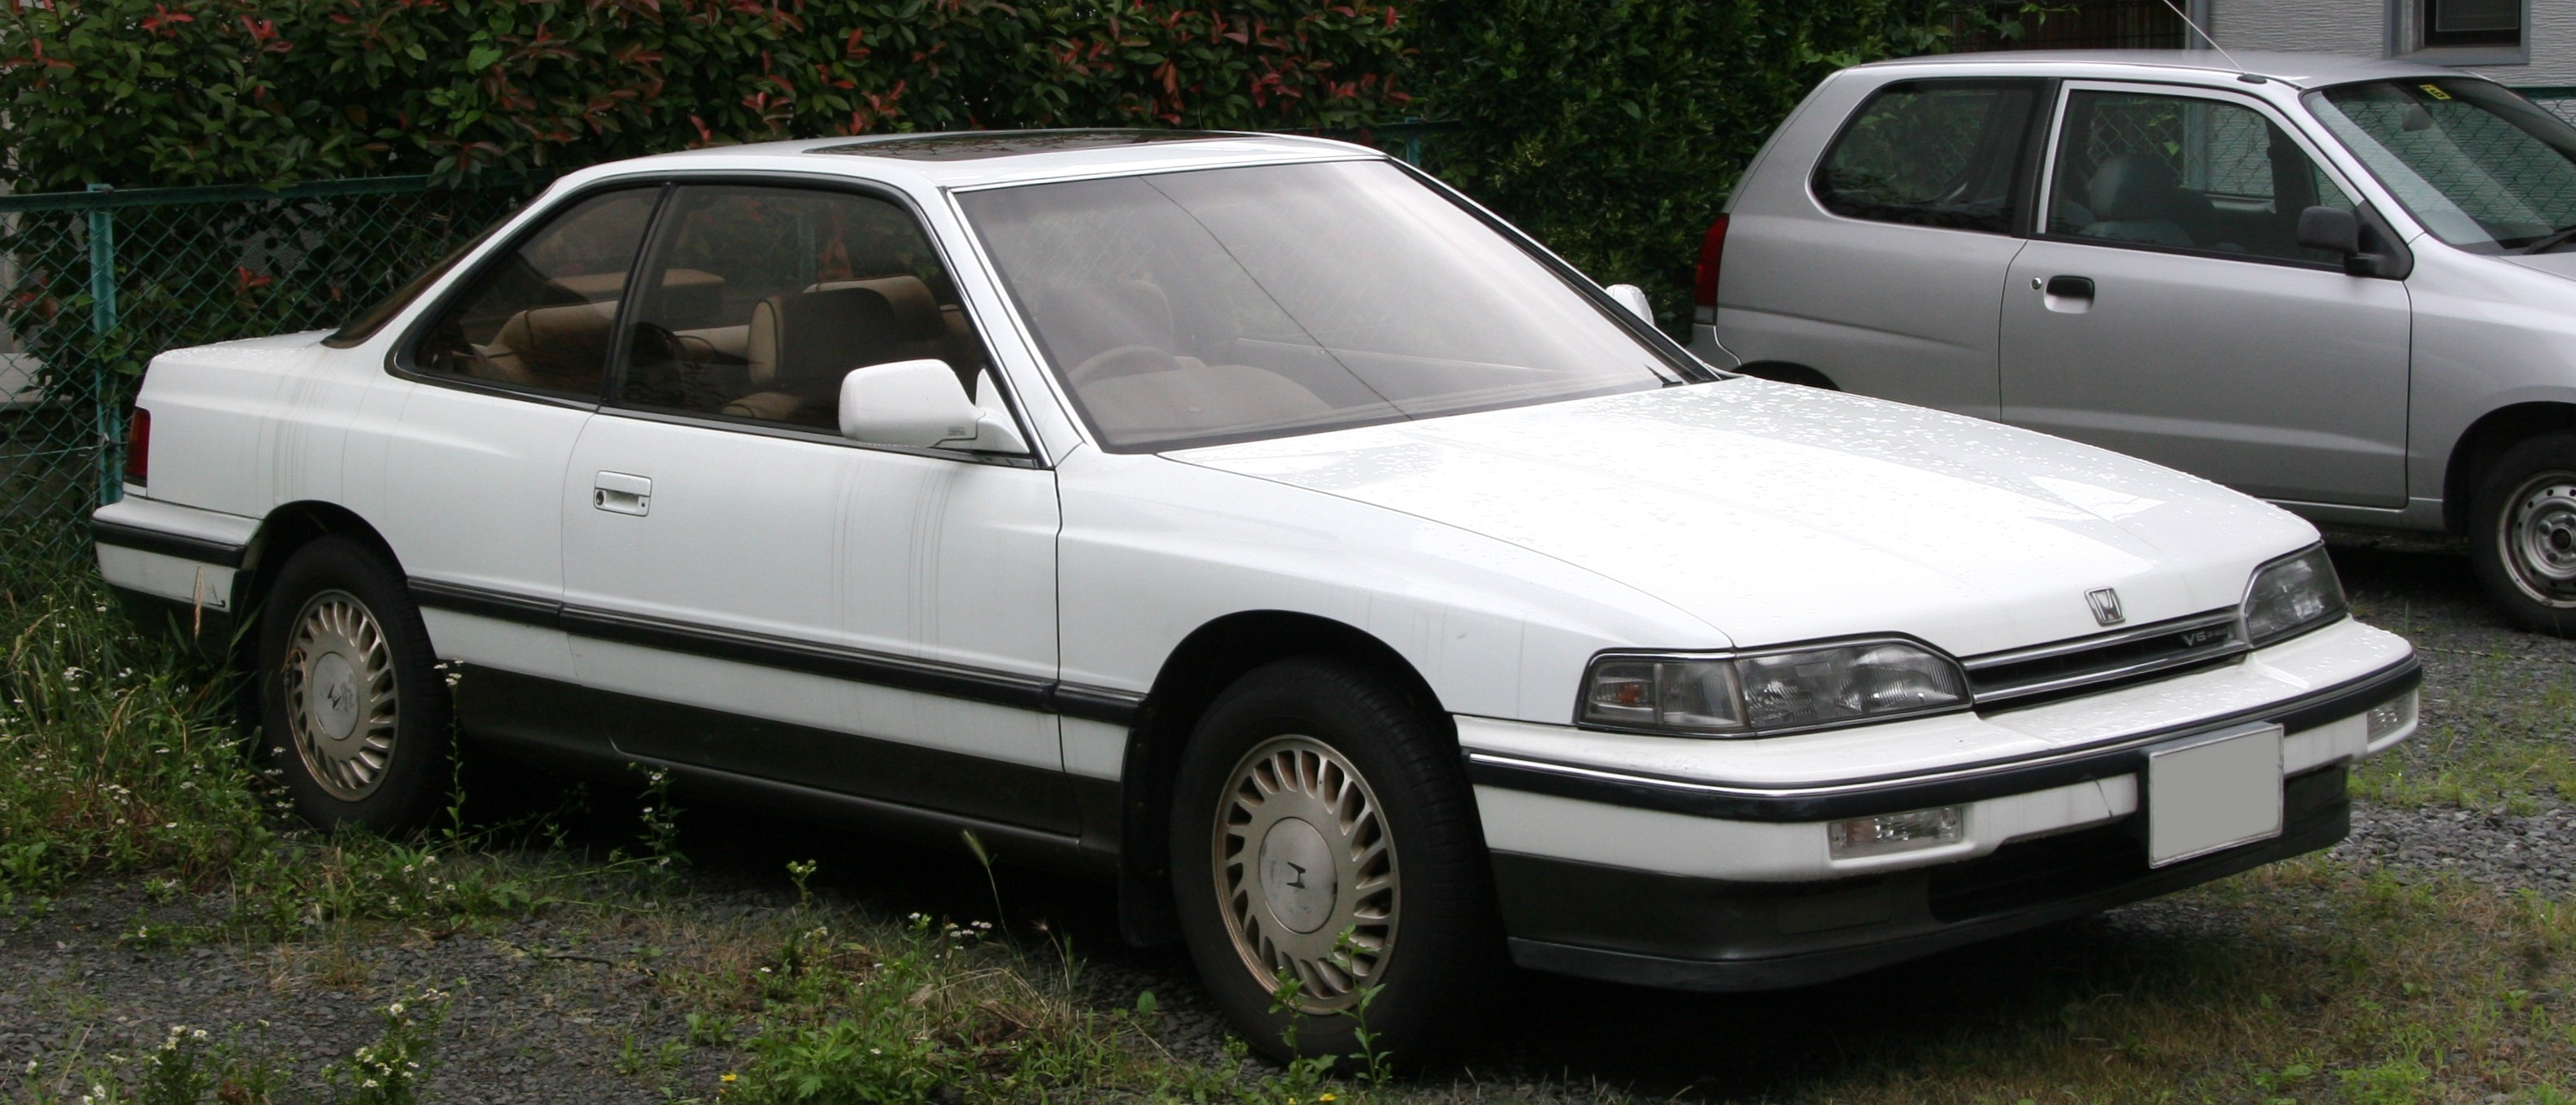 1993 Acura Legend Coupe Youngmike84 Specs Wiring Diagram Free